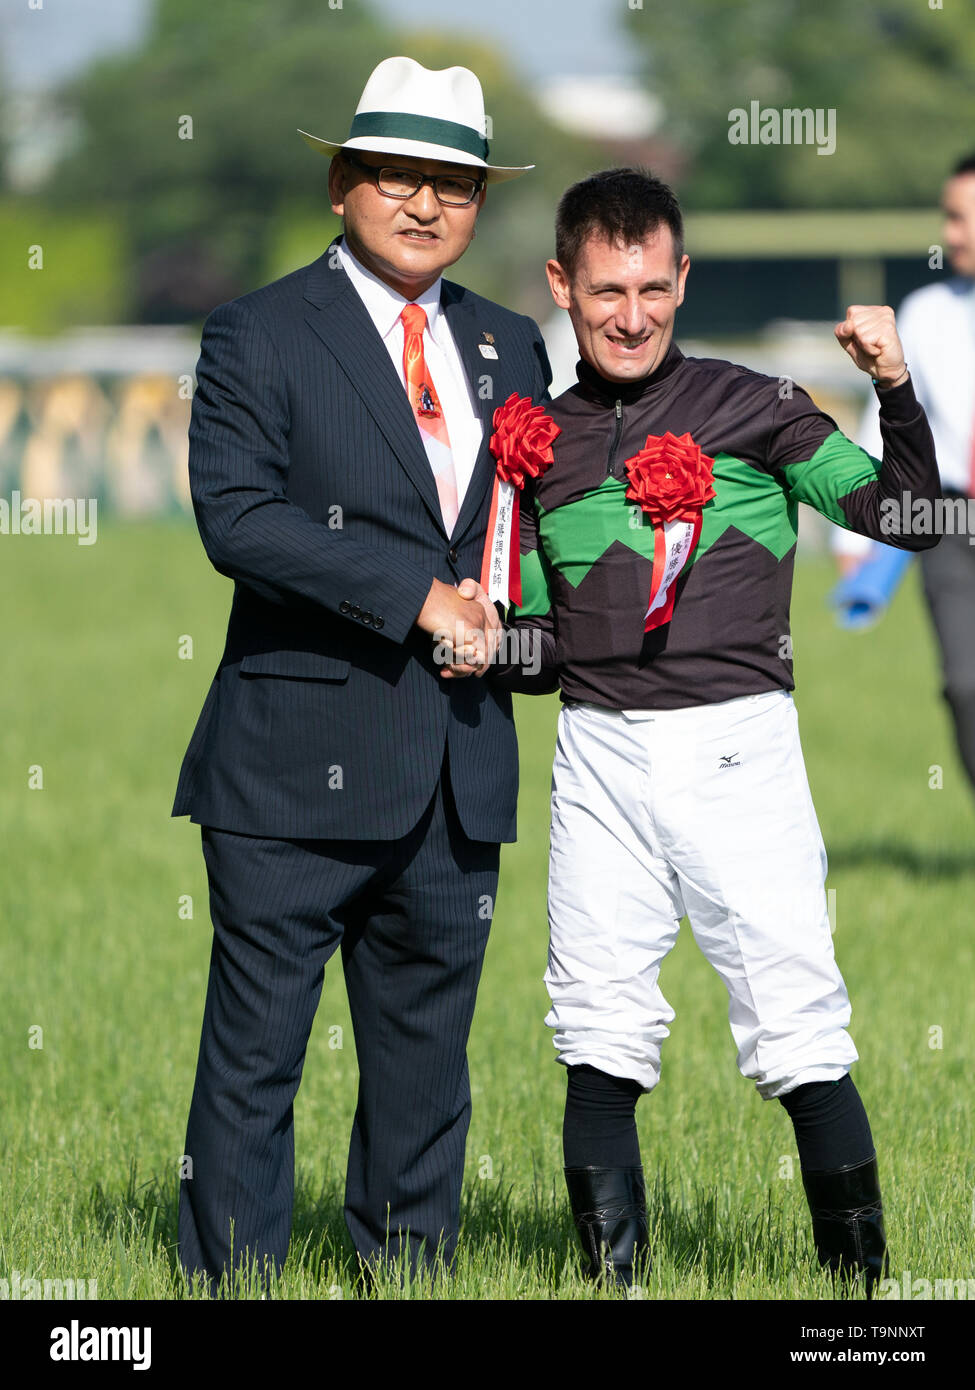 Mirco Demuro riding Loves Only You (owner DMM Dream Club) shake hands with trainer Yoshito Yahagi after winning the 80th Japanese Oaks (G1 2400m) with a new race record of 2;28, 08 at Tokyo Racecourse, Tokyo, Japan on 19 May 2019. Credit: Motoo Naka/AFLO/Alamy Live News - Stock Image